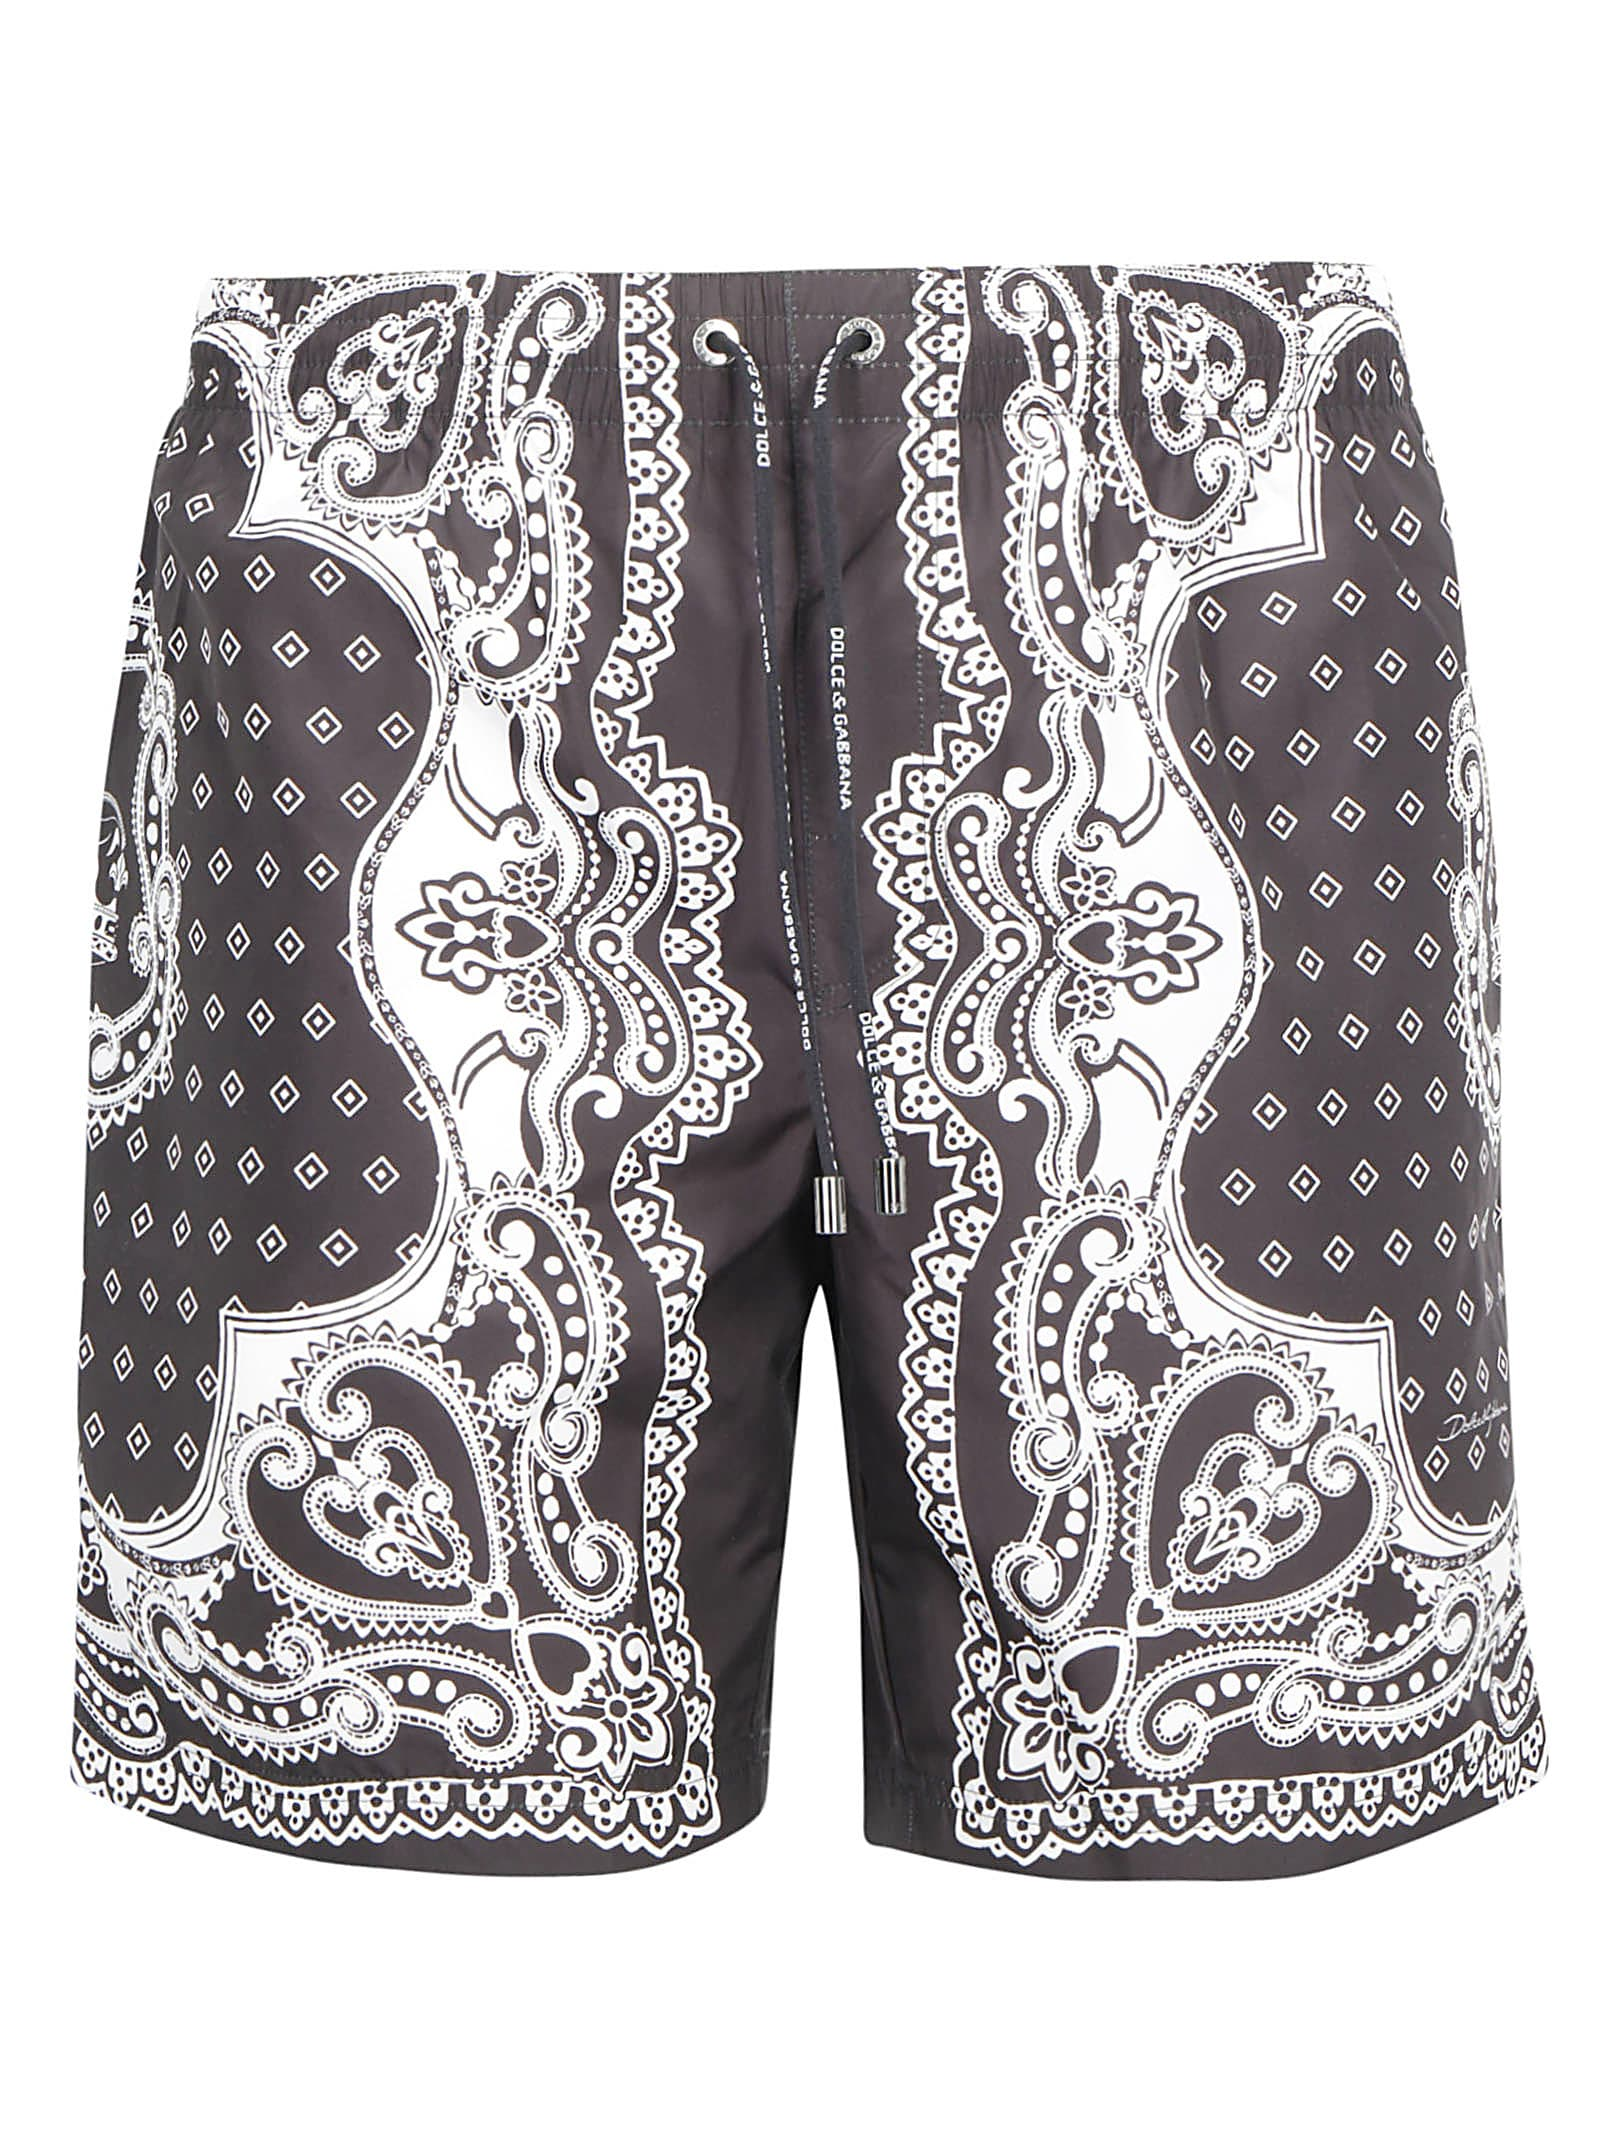 Black Boxer Swimsuit by Dolce & Gabbana, adjustable drawstring waistband, paisley contrast print all over, two welt pockets on front. Composition: 100% Polyester